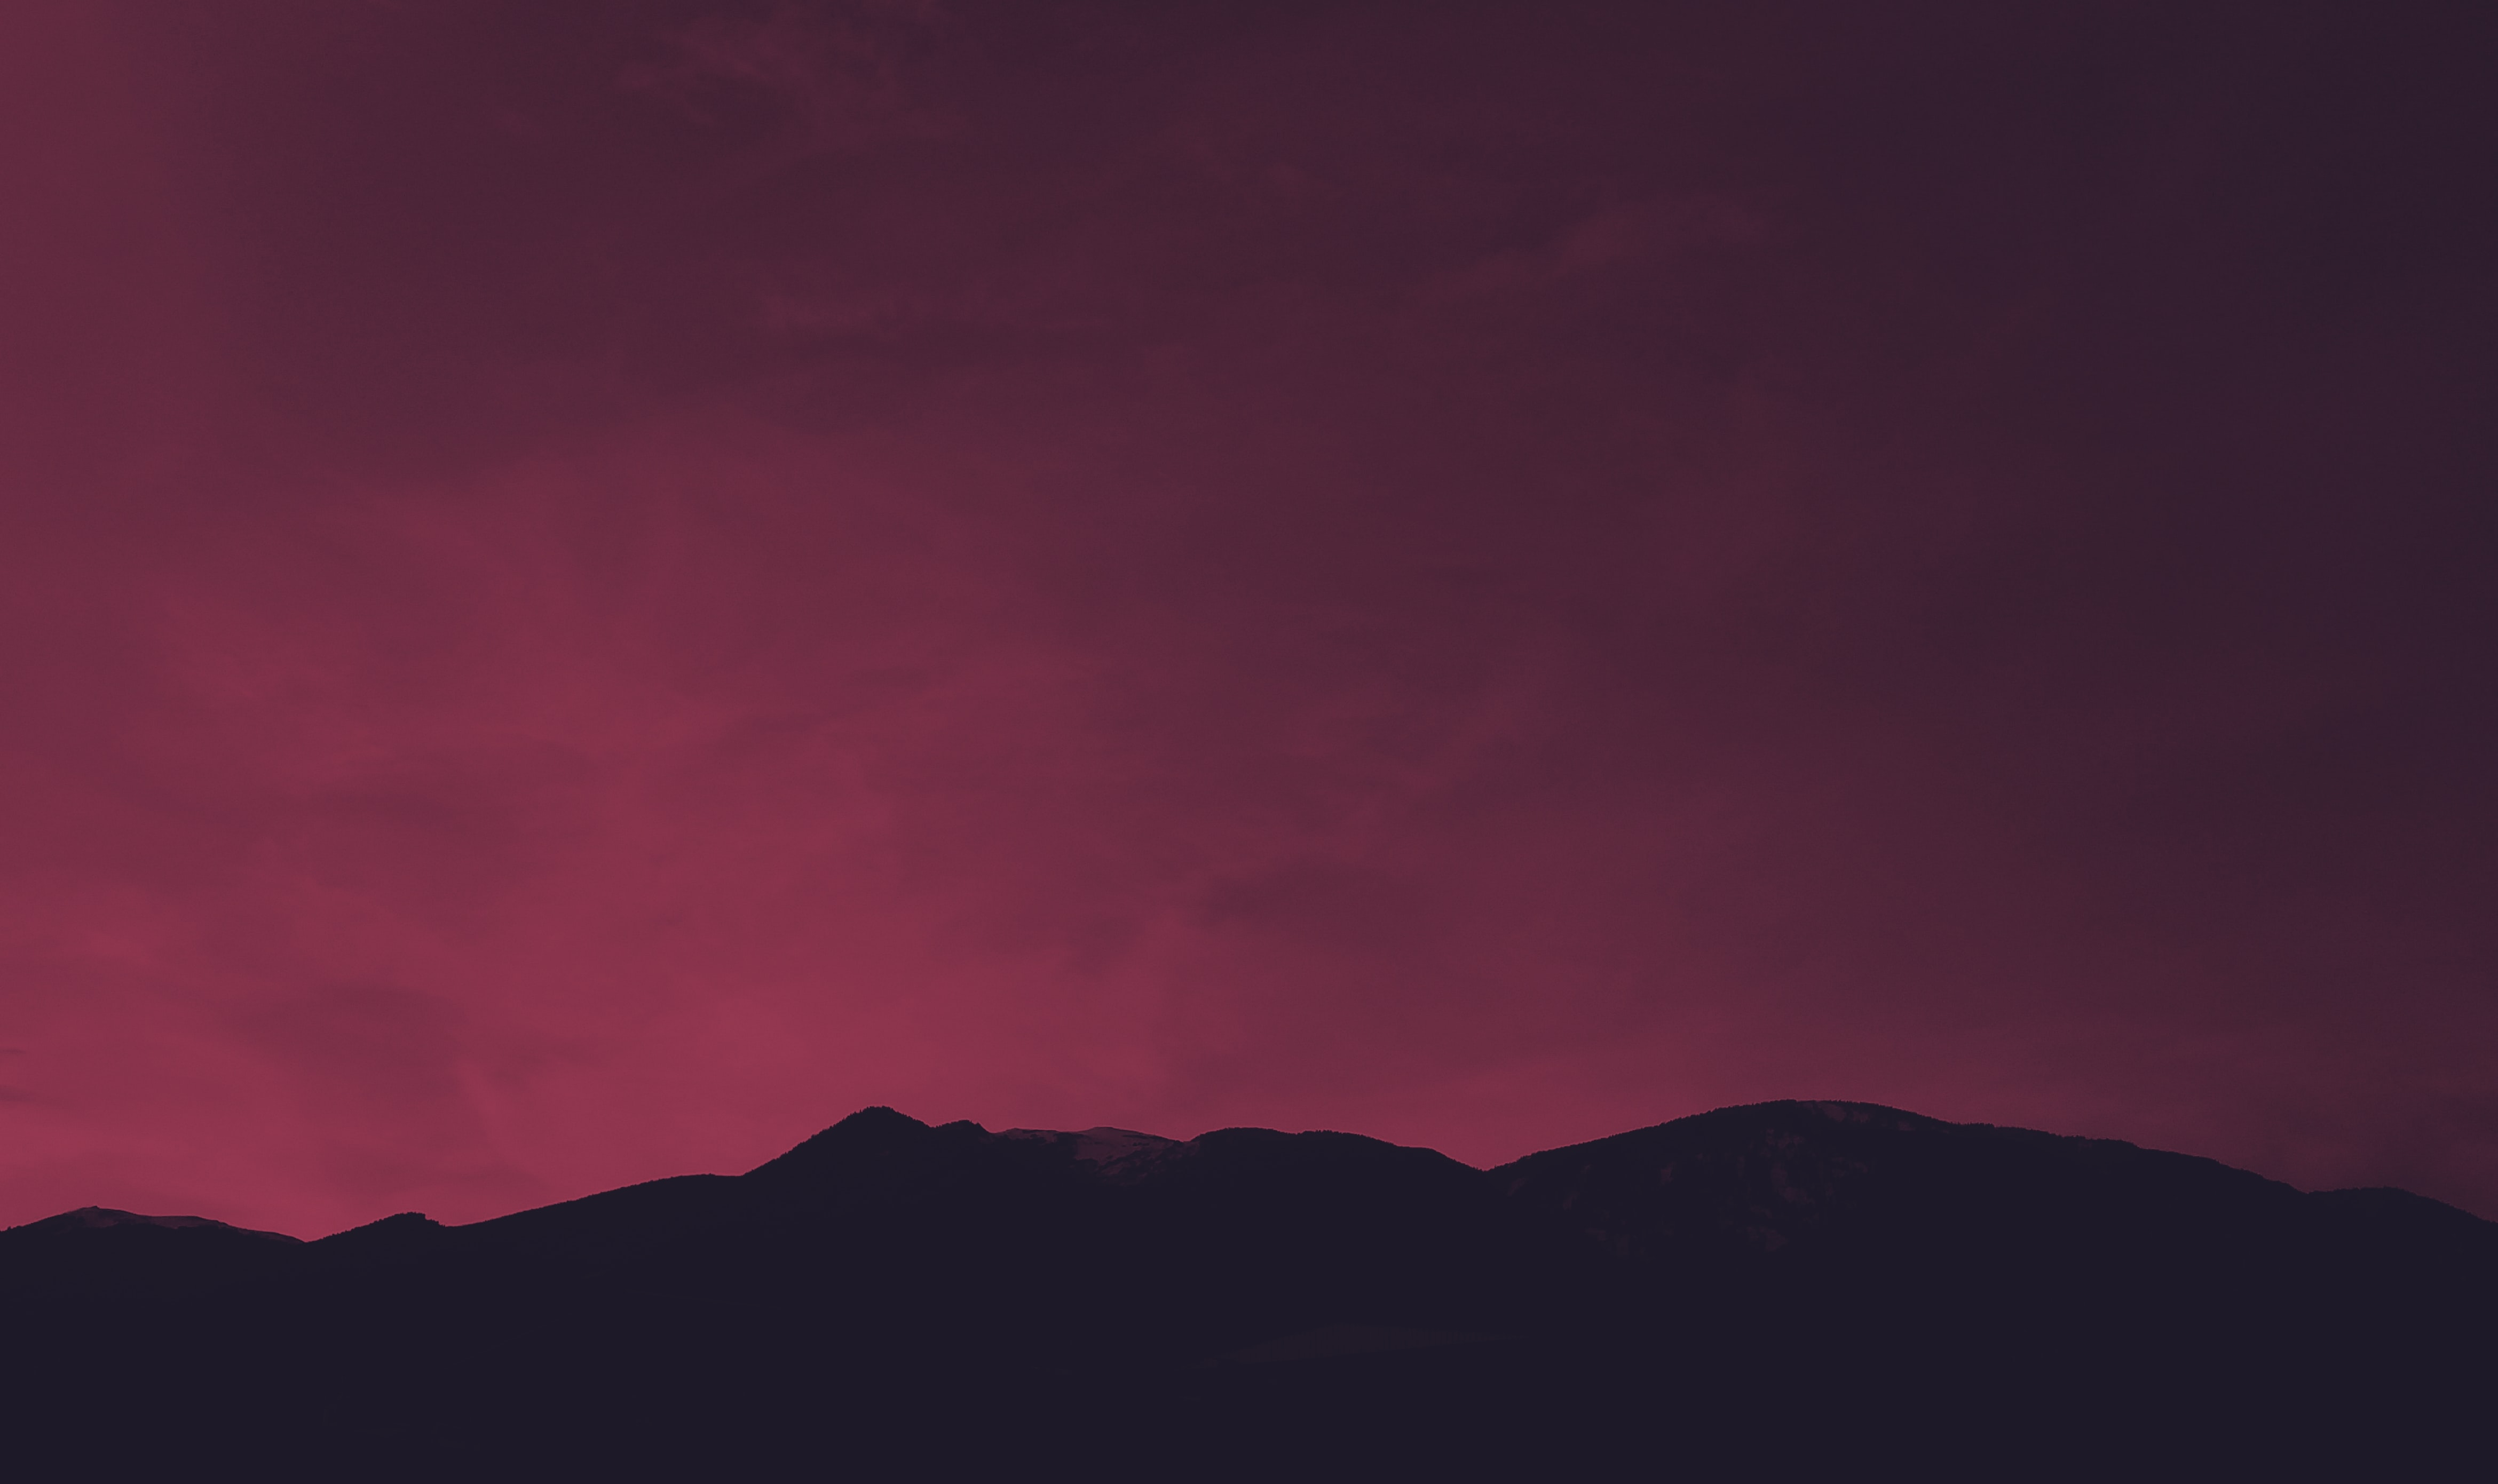 silhouette of mountain under red sky